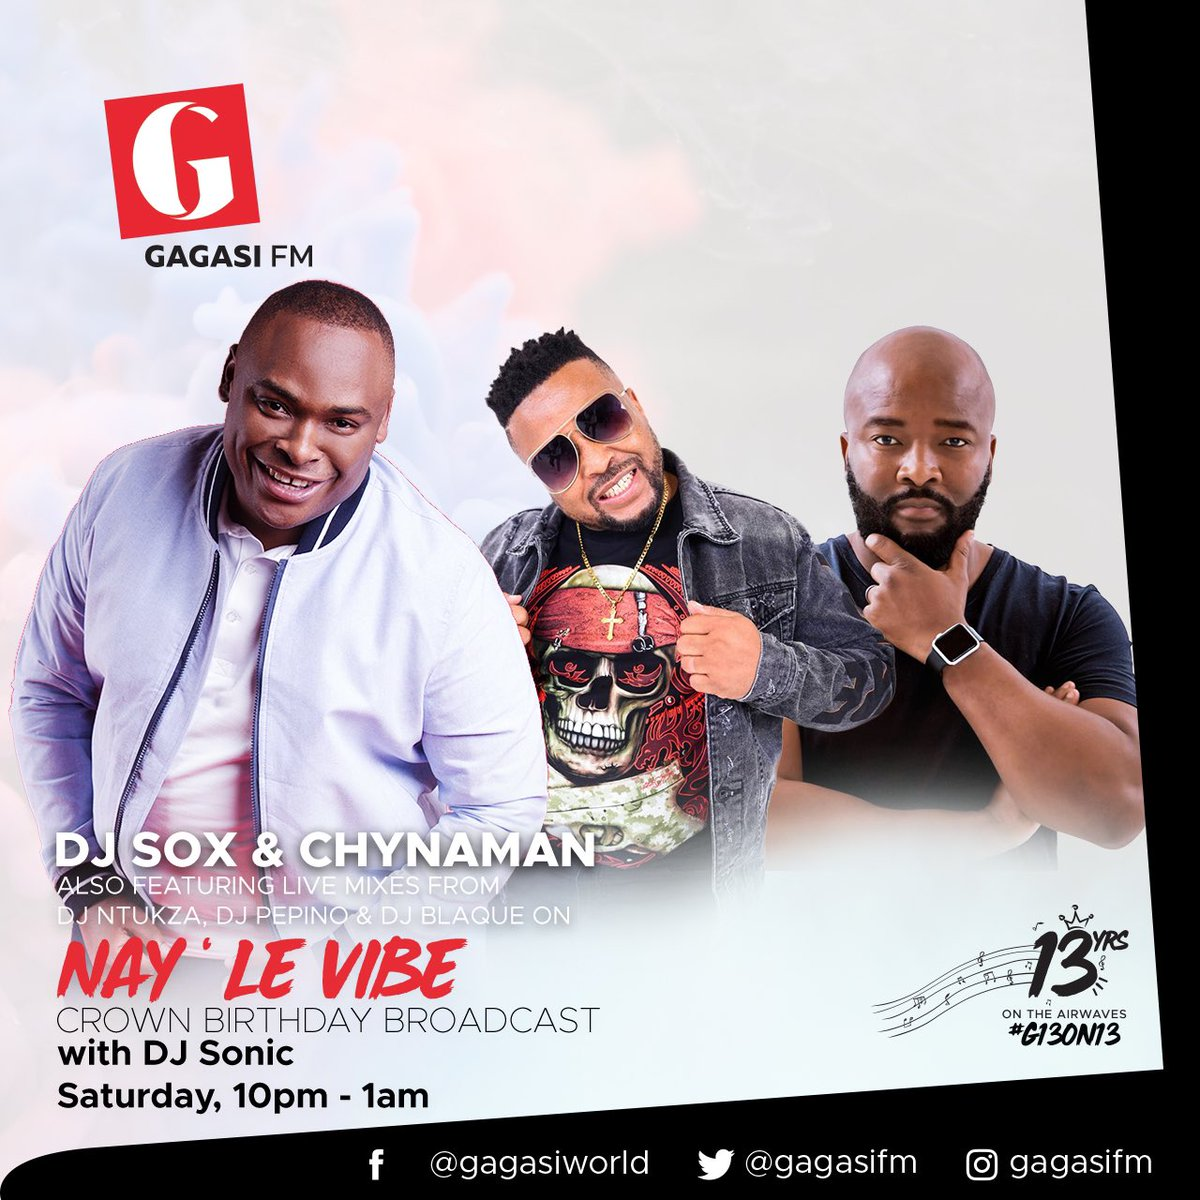 Still on that #G13on13 tip, TONIGHT on #NayiLeVibeWithDjSonic @DeejaySonicSA on @gagasifm we go down memory lane with myself &  @chynamandj with super live mixes and exclusive music... You don't wanna miss this one... 10pm SiOn !!!